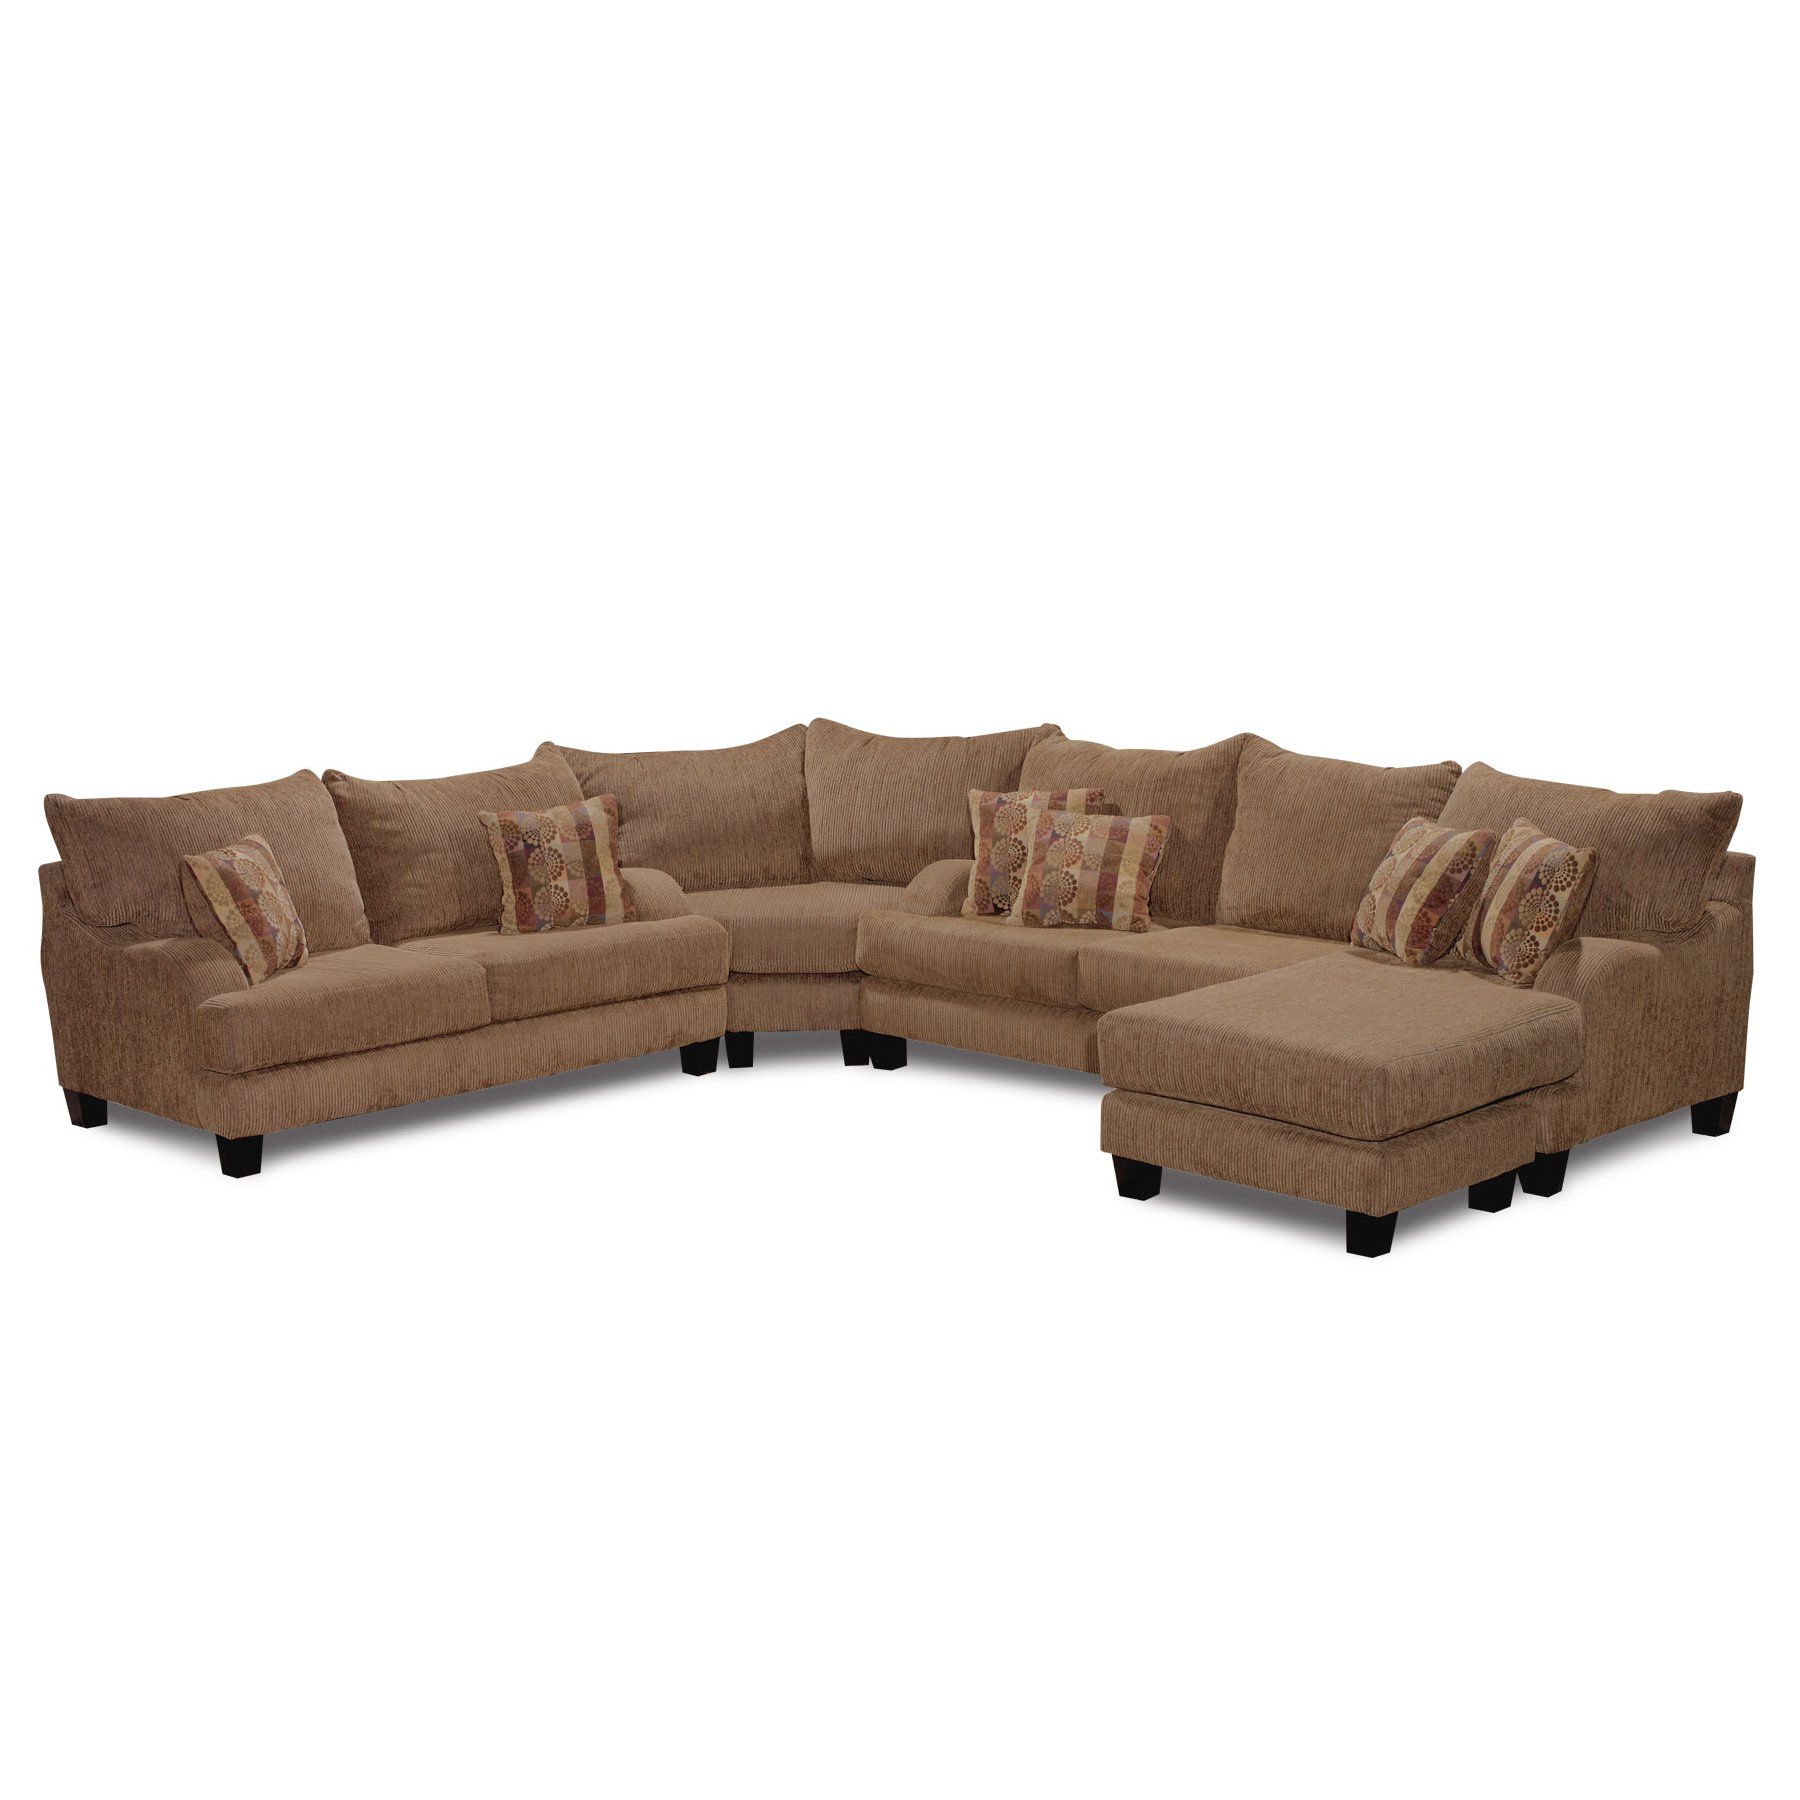 deal zone shop sectional sofas and leather sectionals rc